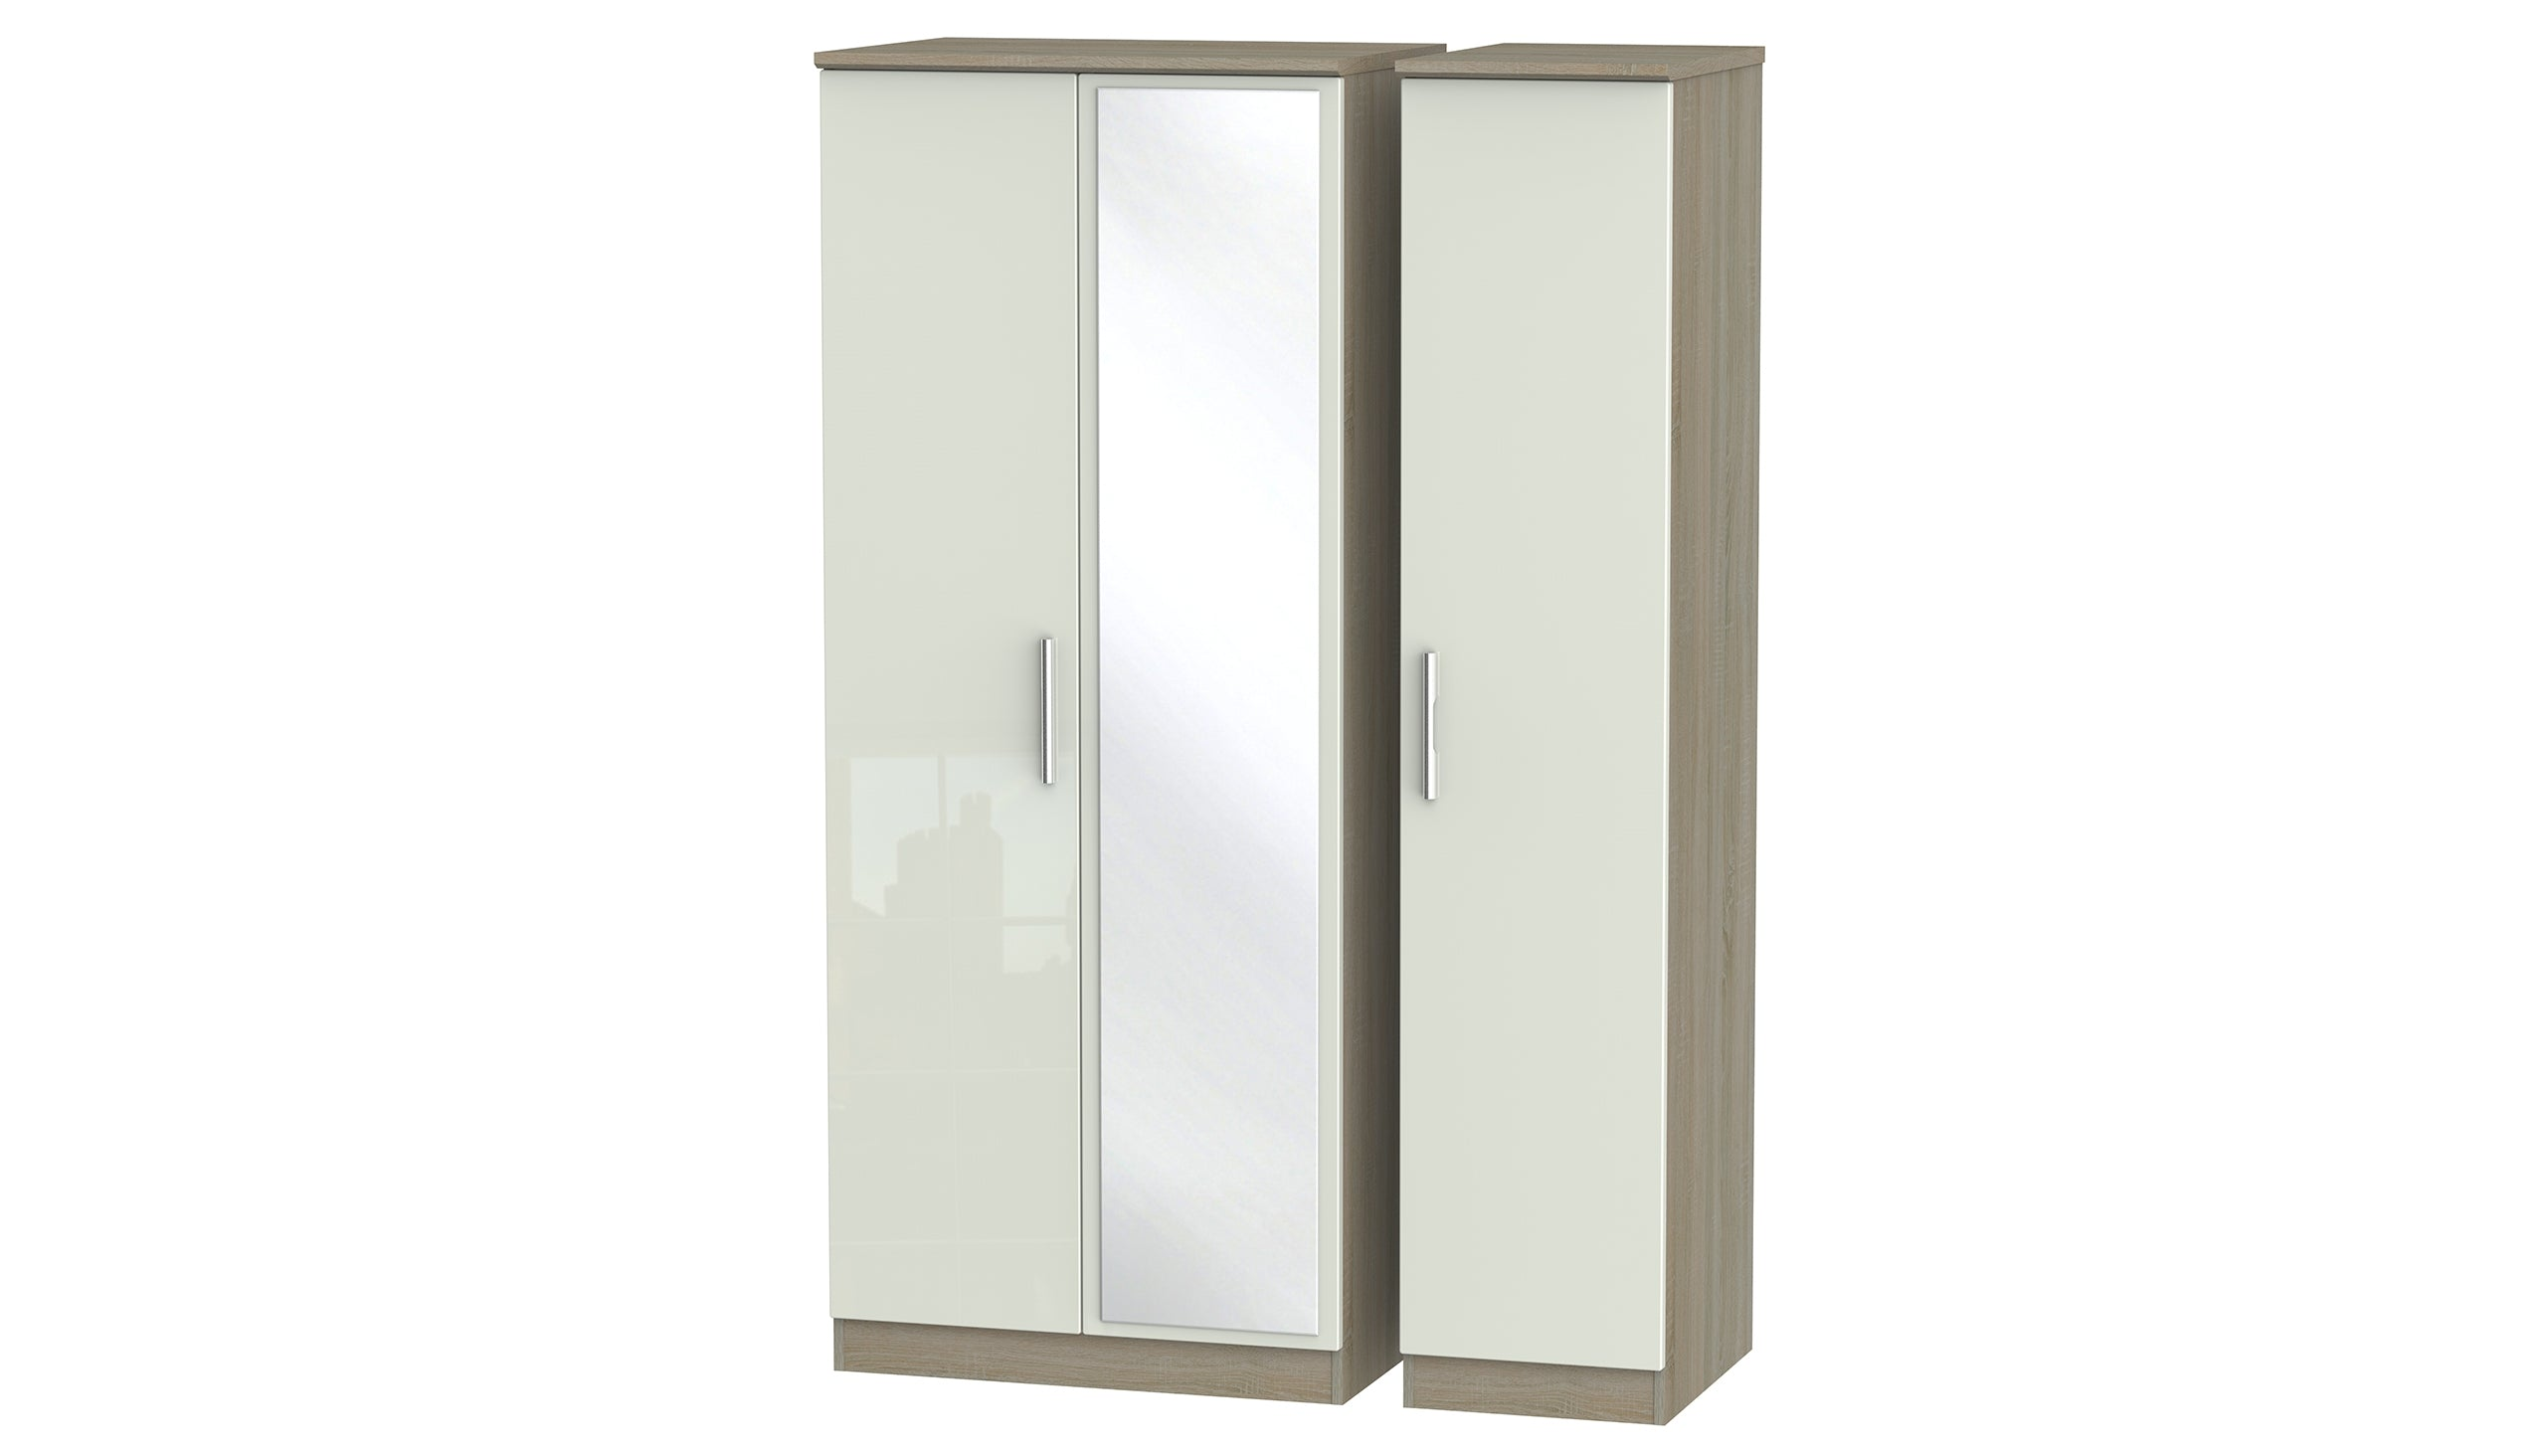 Burnham 3 door mirrored wardrobe - AHF Furniture & Carpets